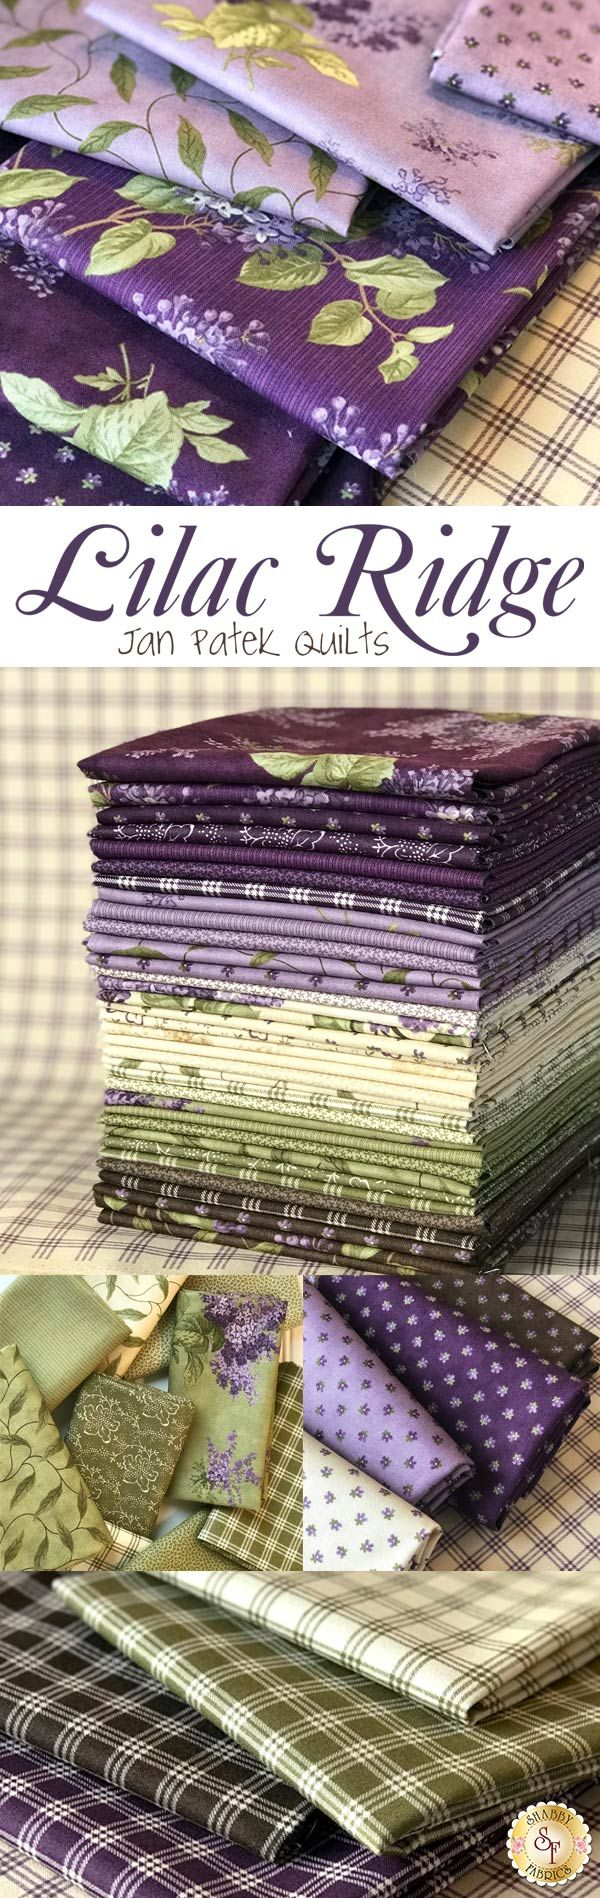 Lilac Ridge by Jan Patek is a beautiful collection from Moda Fabrics available at Shabby Fabrics